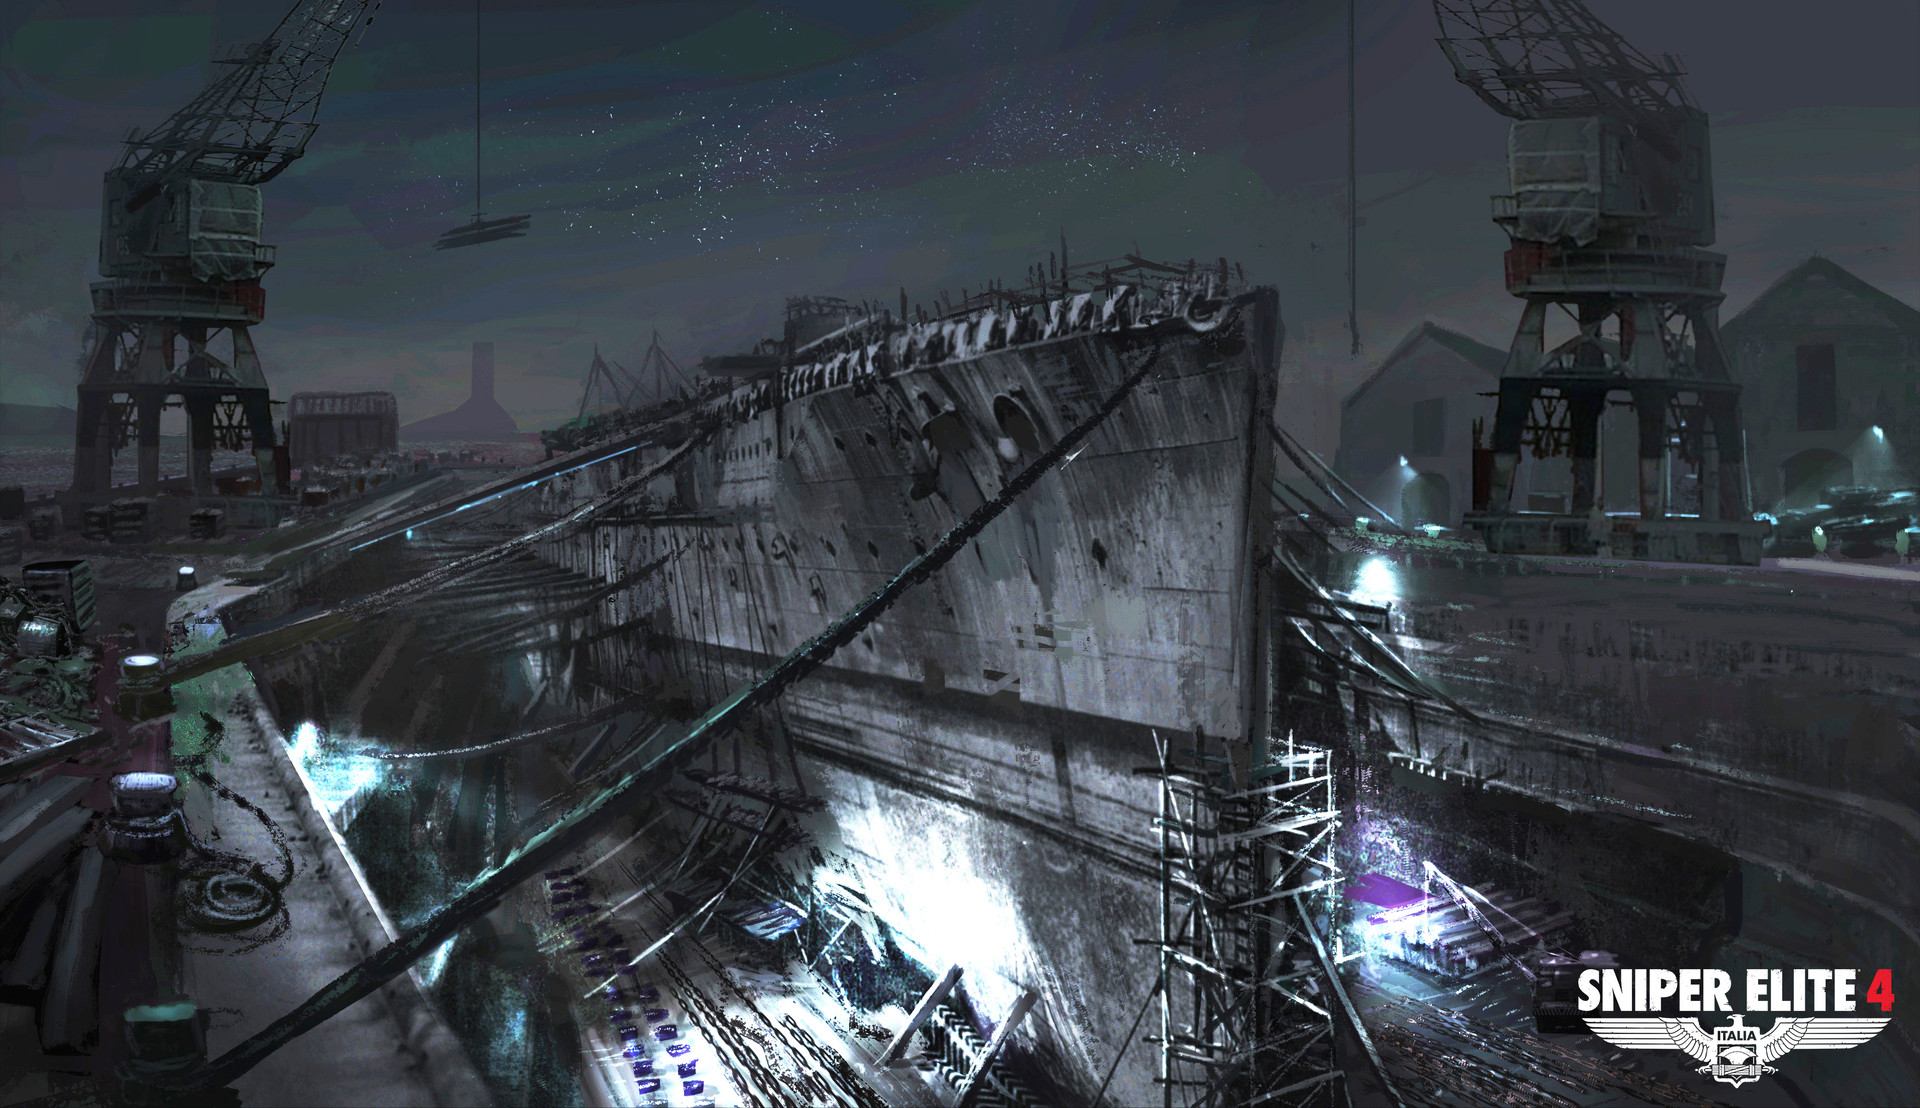 Jack eaves dock concept workingscenes 02a